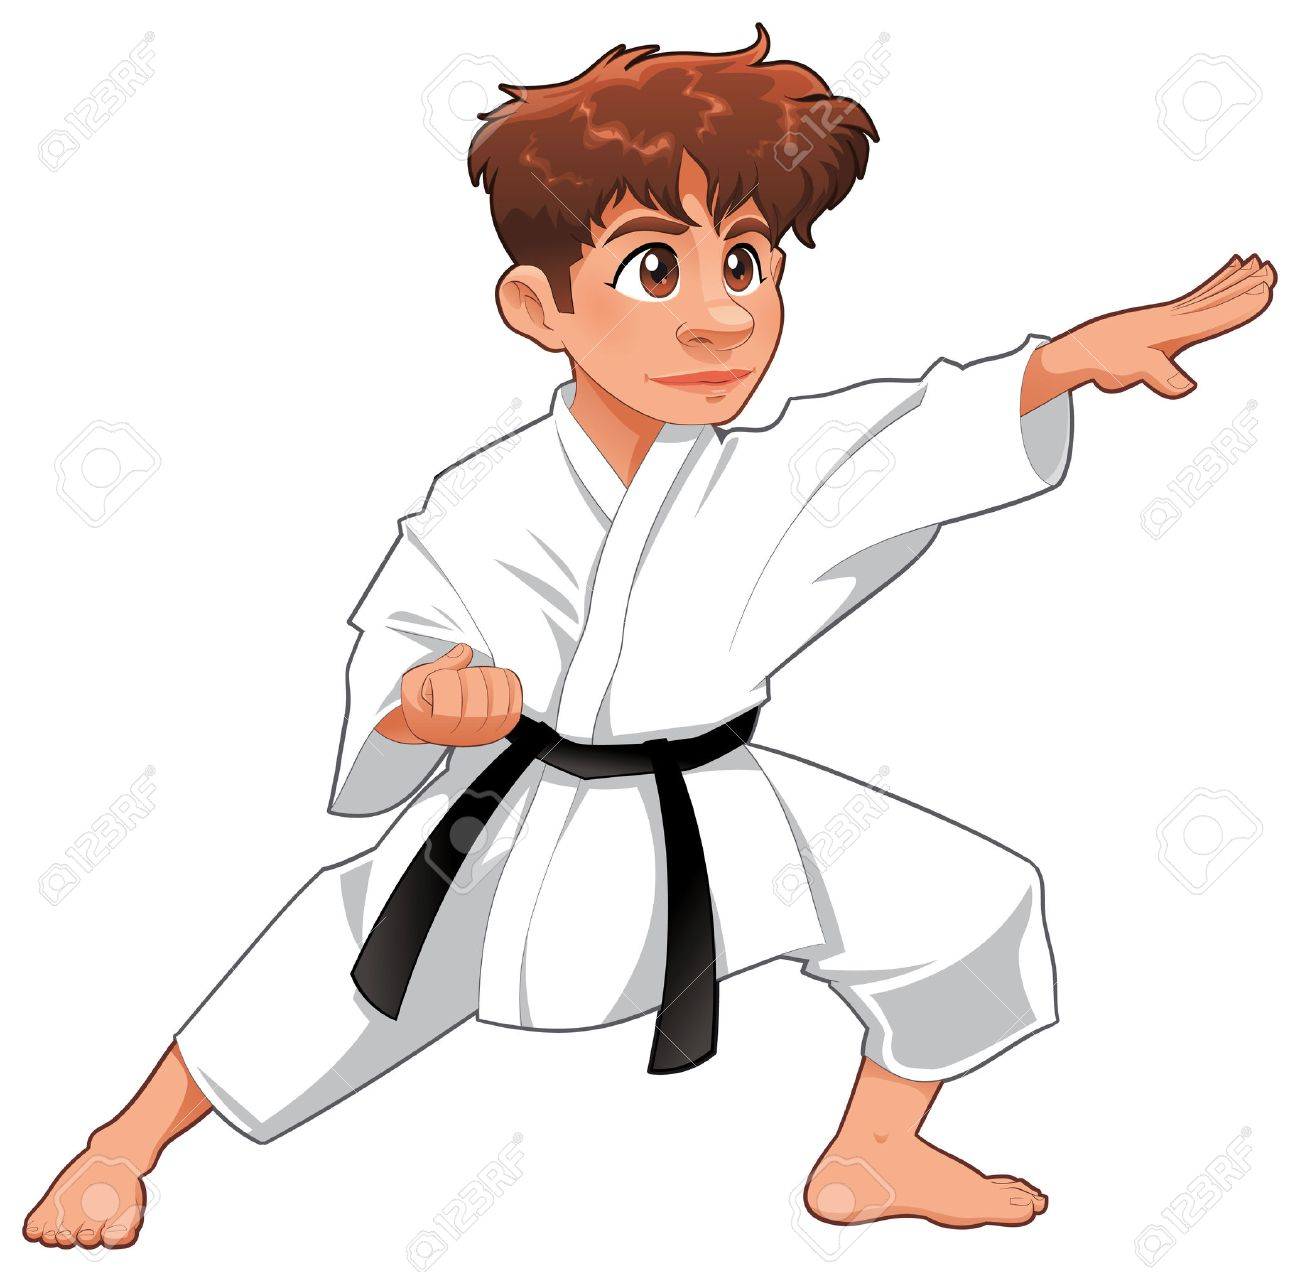 baby karate player cartoon isolated character royalty free cliparts rh 123rf com Kung Fu Cartoon Characters Kung Fu Cartoon Characters